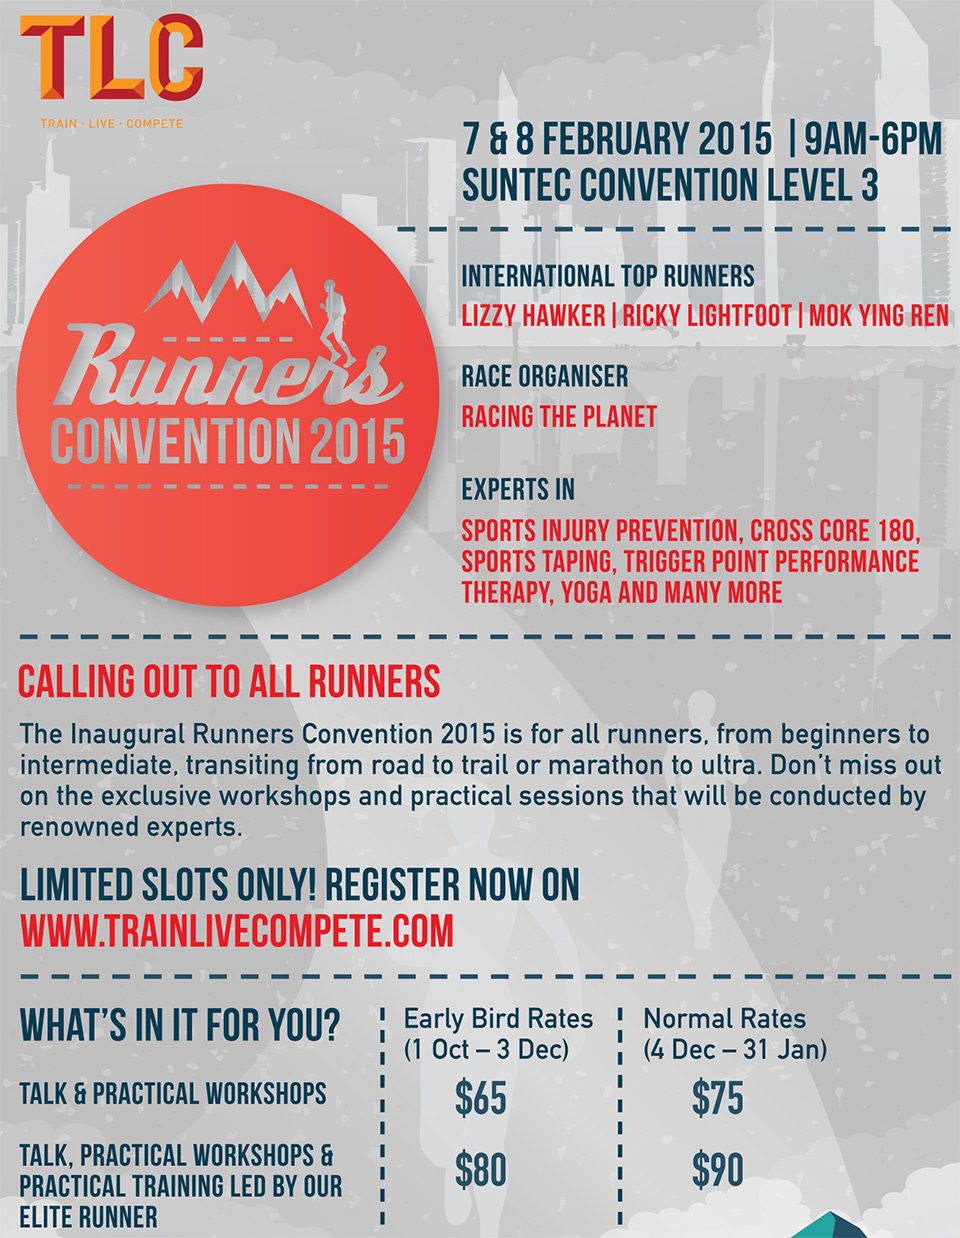 Runners Convention 2015: Must-Visit Event Brings International Top Runners to Singapore!